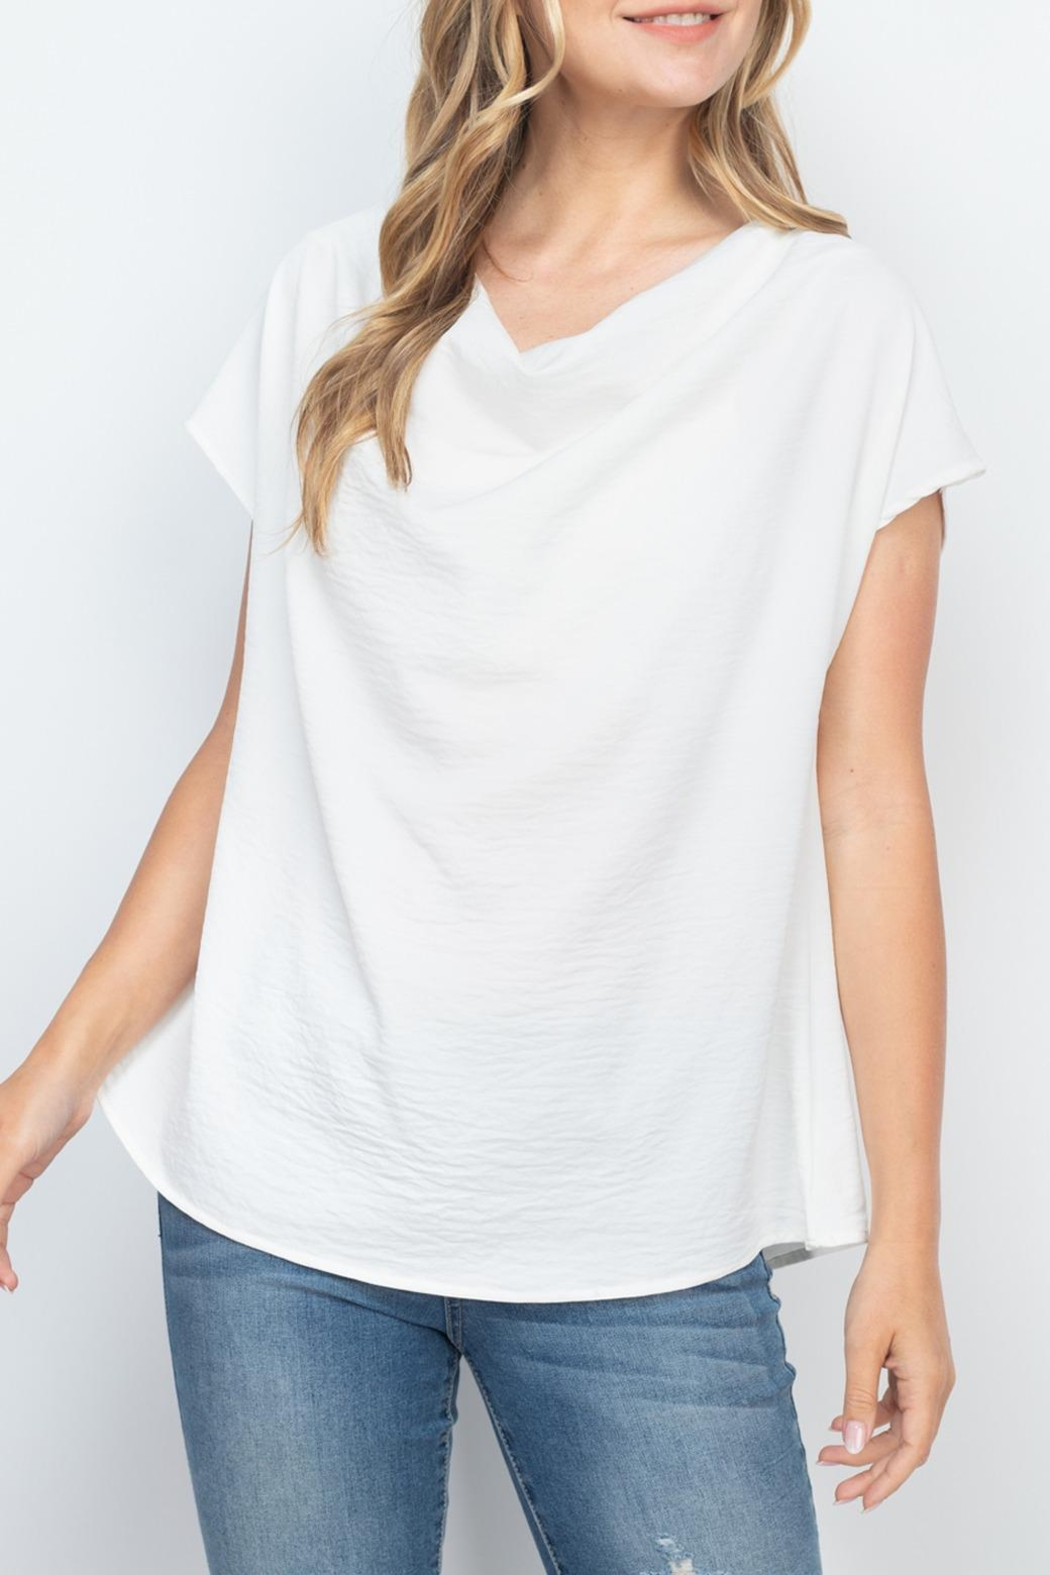 Riah Fashion Cap-Sleeve-Cowl-Neck-Woven-Top - Front Cropped Image